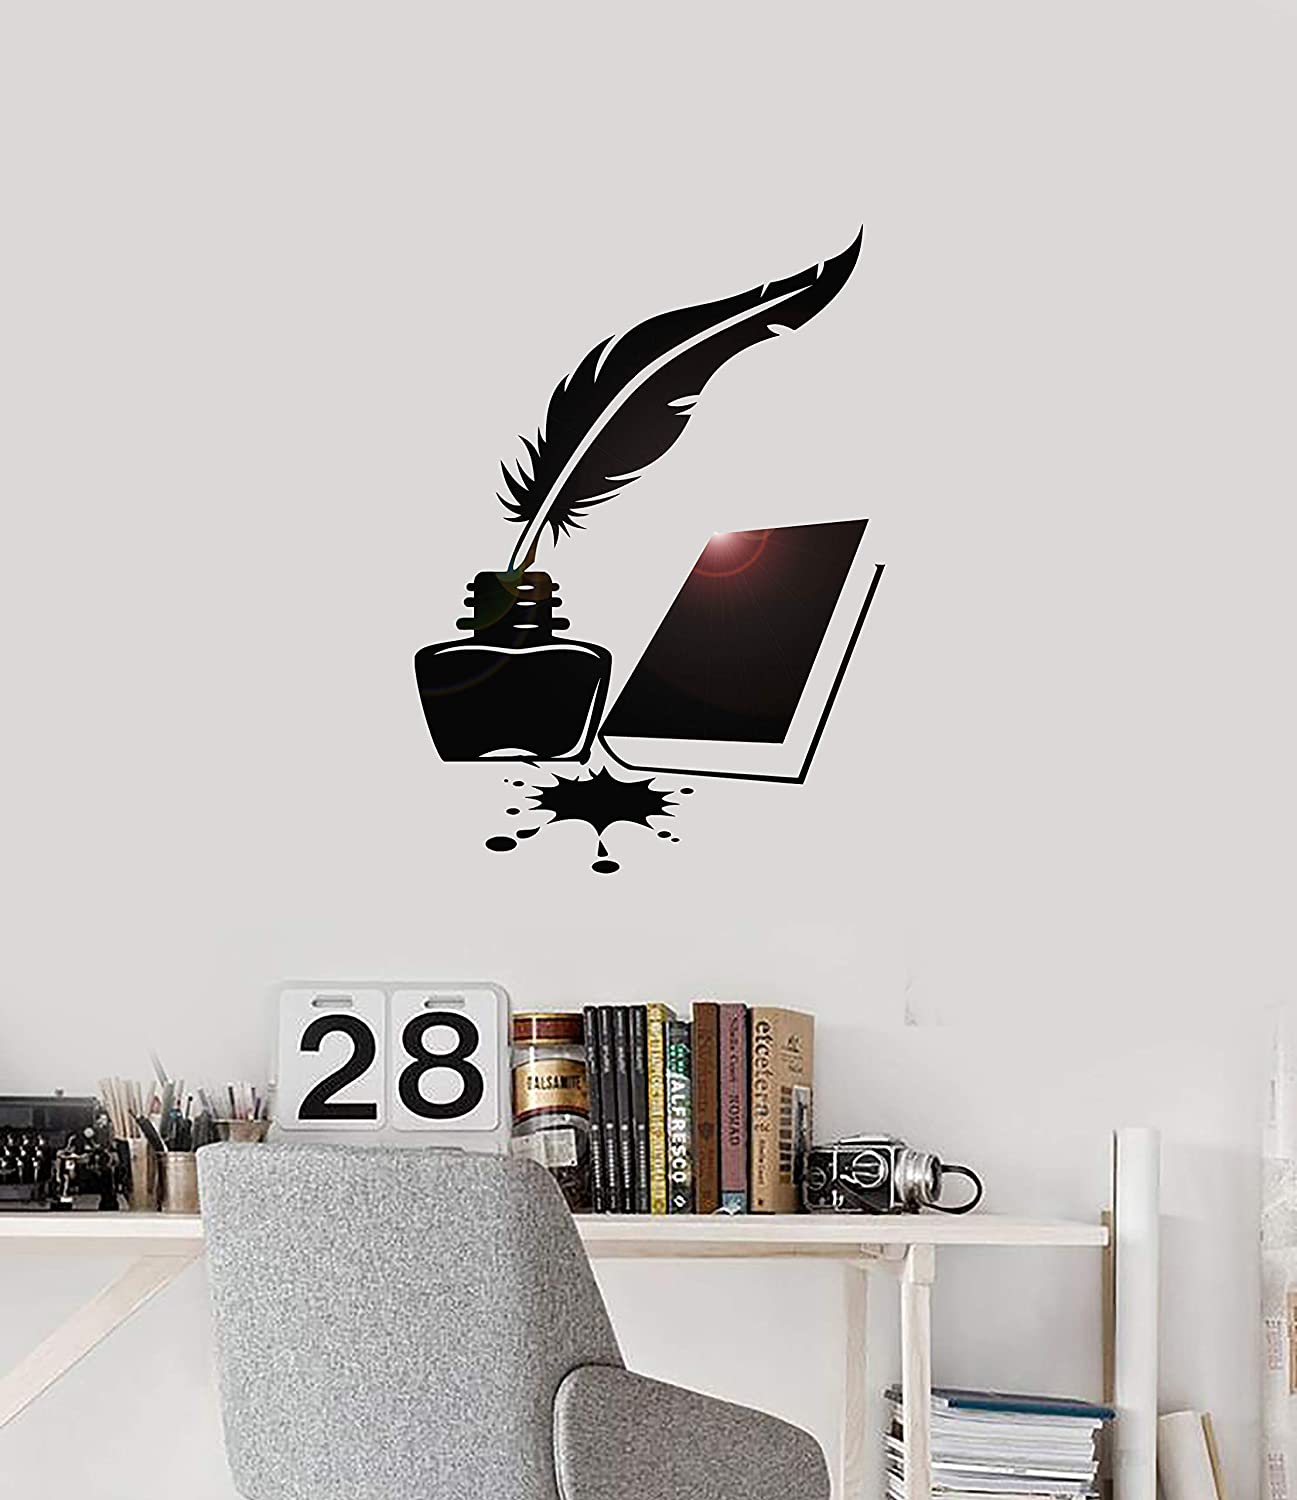 Vinyl Wall Decal Book Feather and Ink Writer Library School Interior Stickers Mural Large Decor (ig5898) Black